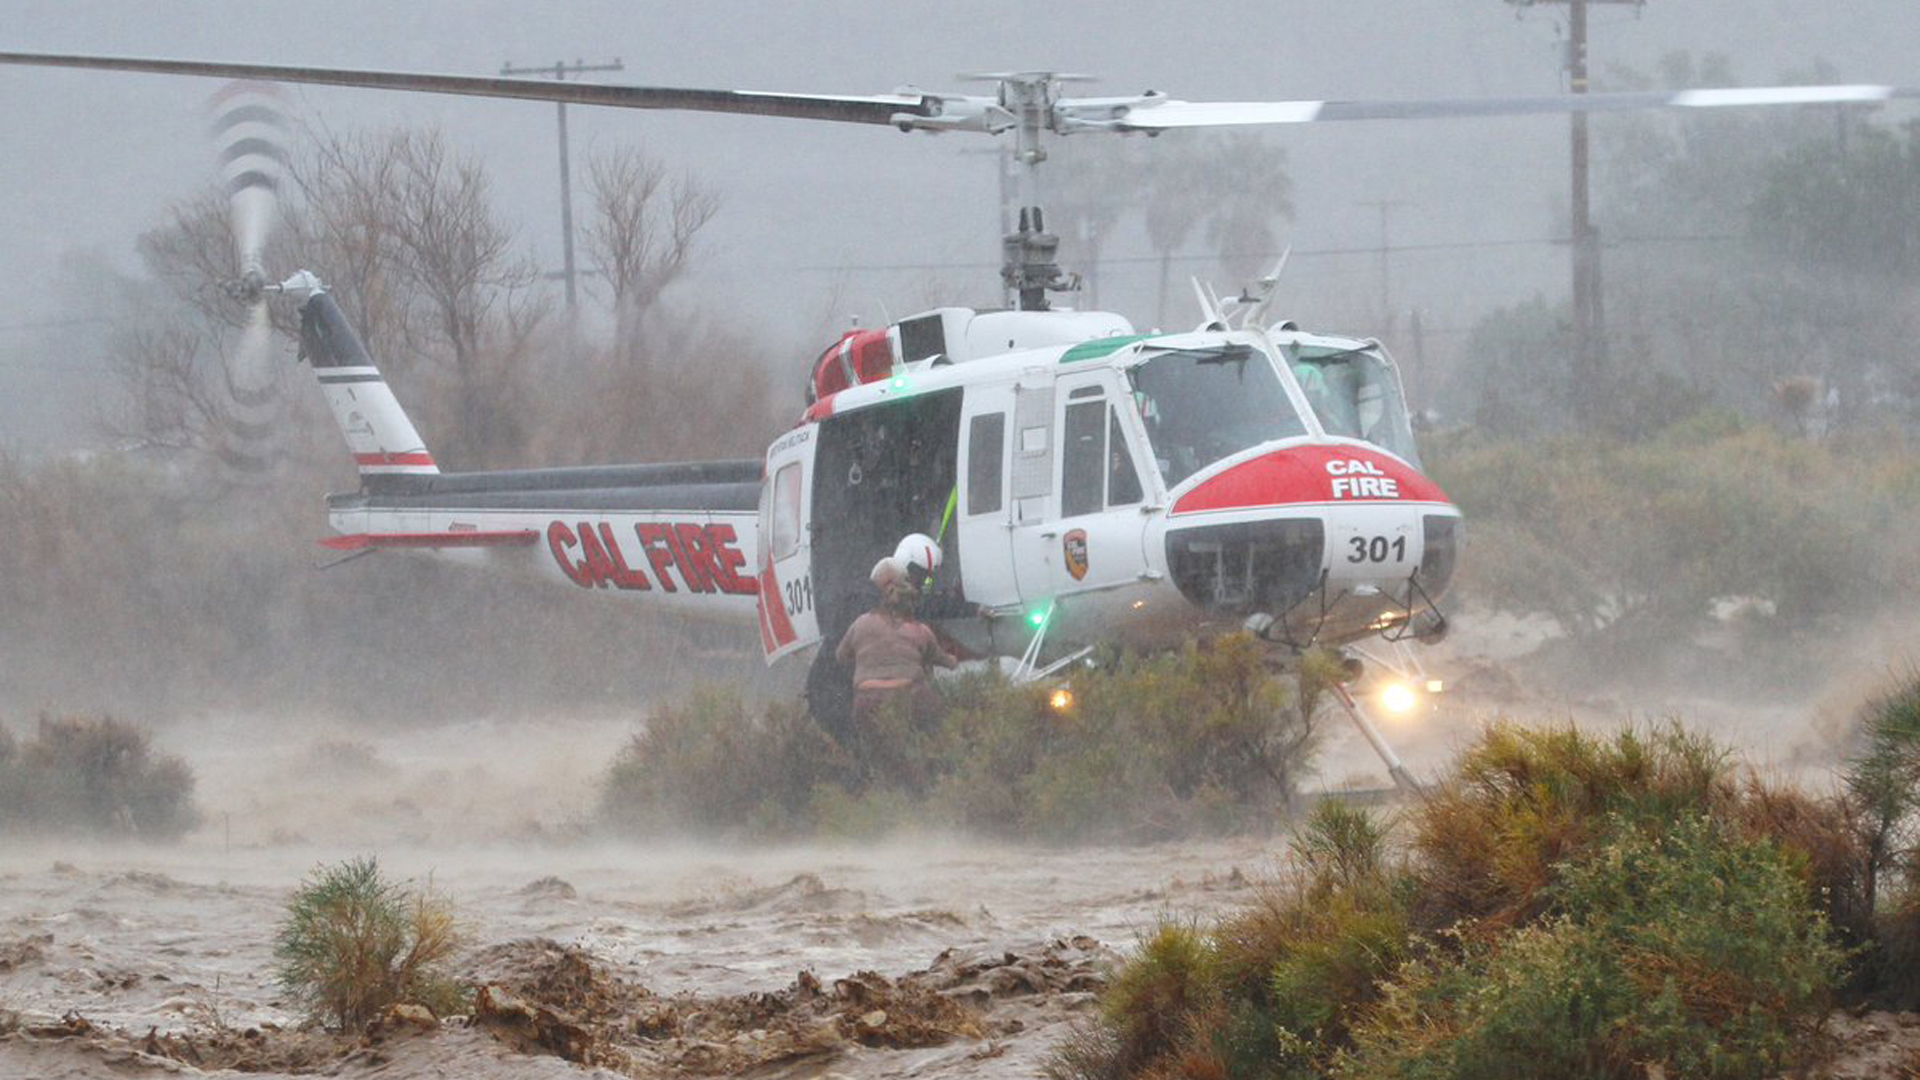 A Cal Fire helicopter works to rescue to people from flooding in Cabazon on Feb. 14, 2019. It was one of dozens of rescues carried out that day.(Credit: Cal Fire Riverside)